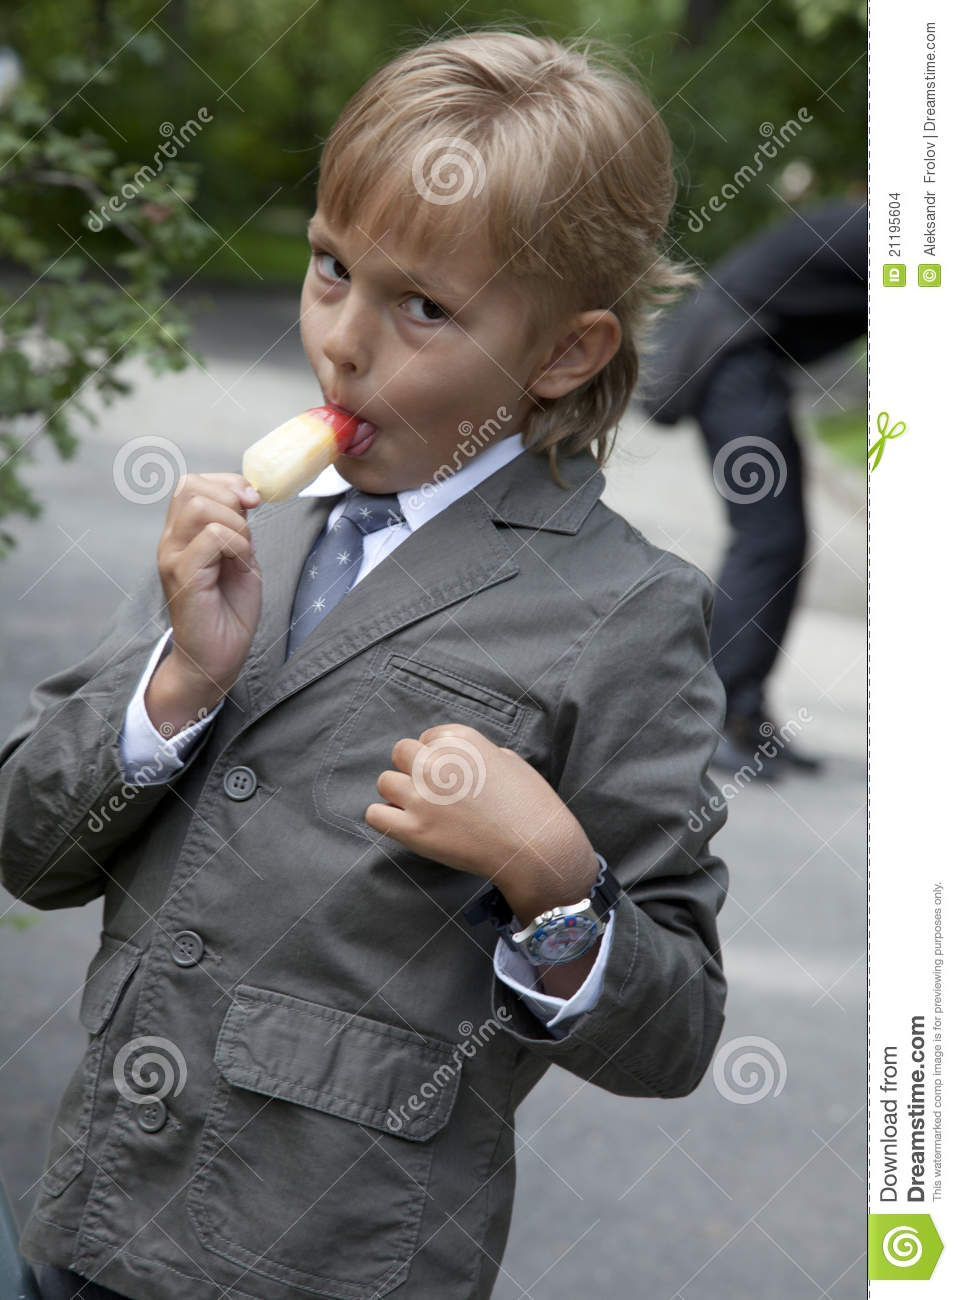 Boy in a gray suit eats ice cream